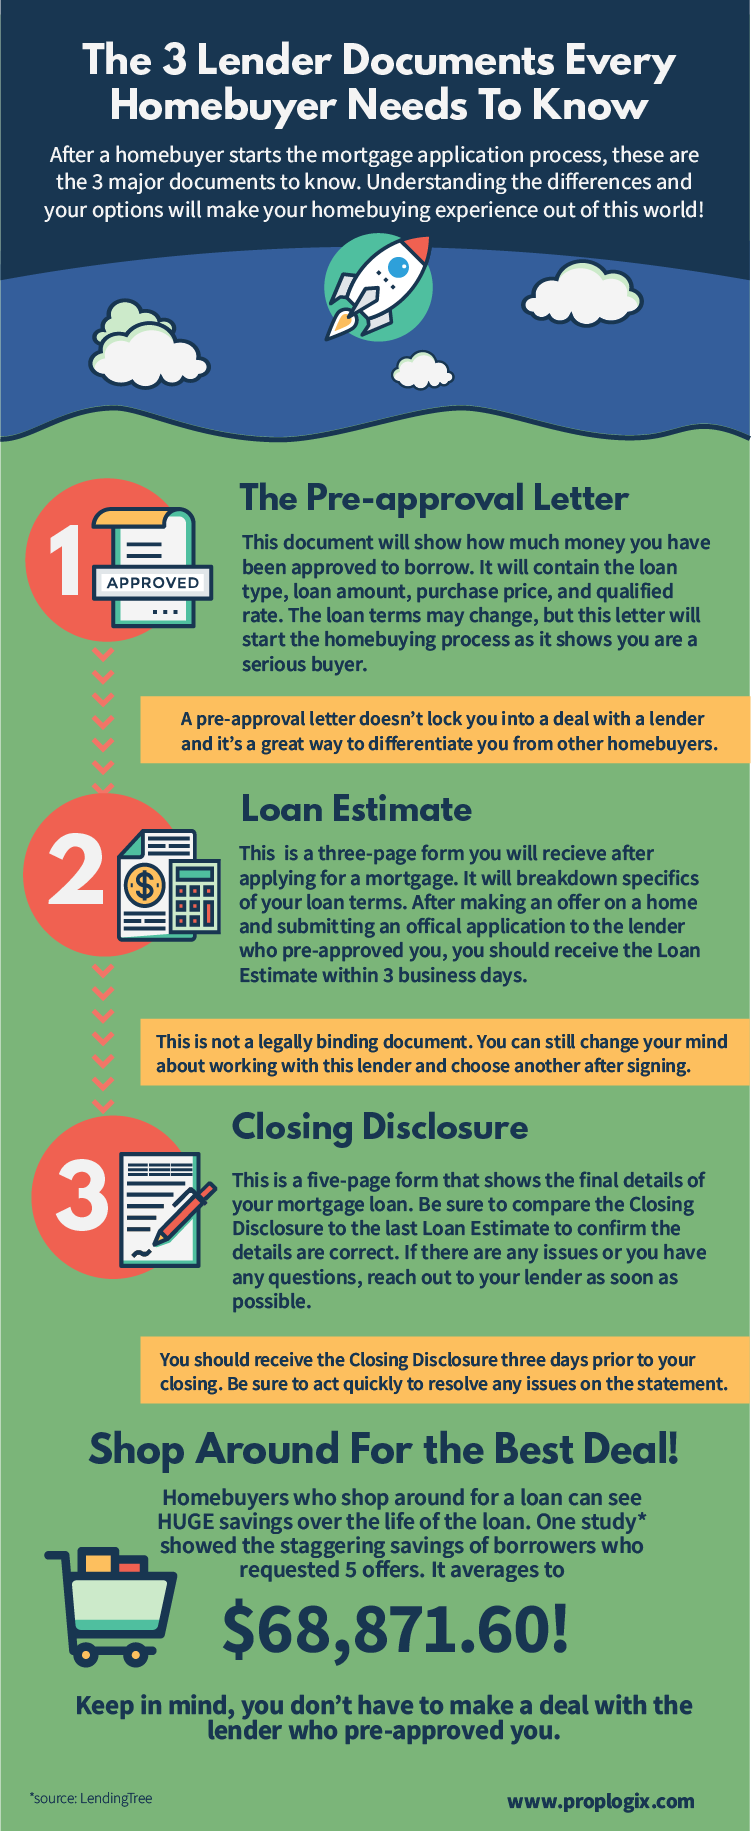 Homebuyer Tips When Applying For A Mortgage So You Get The Best